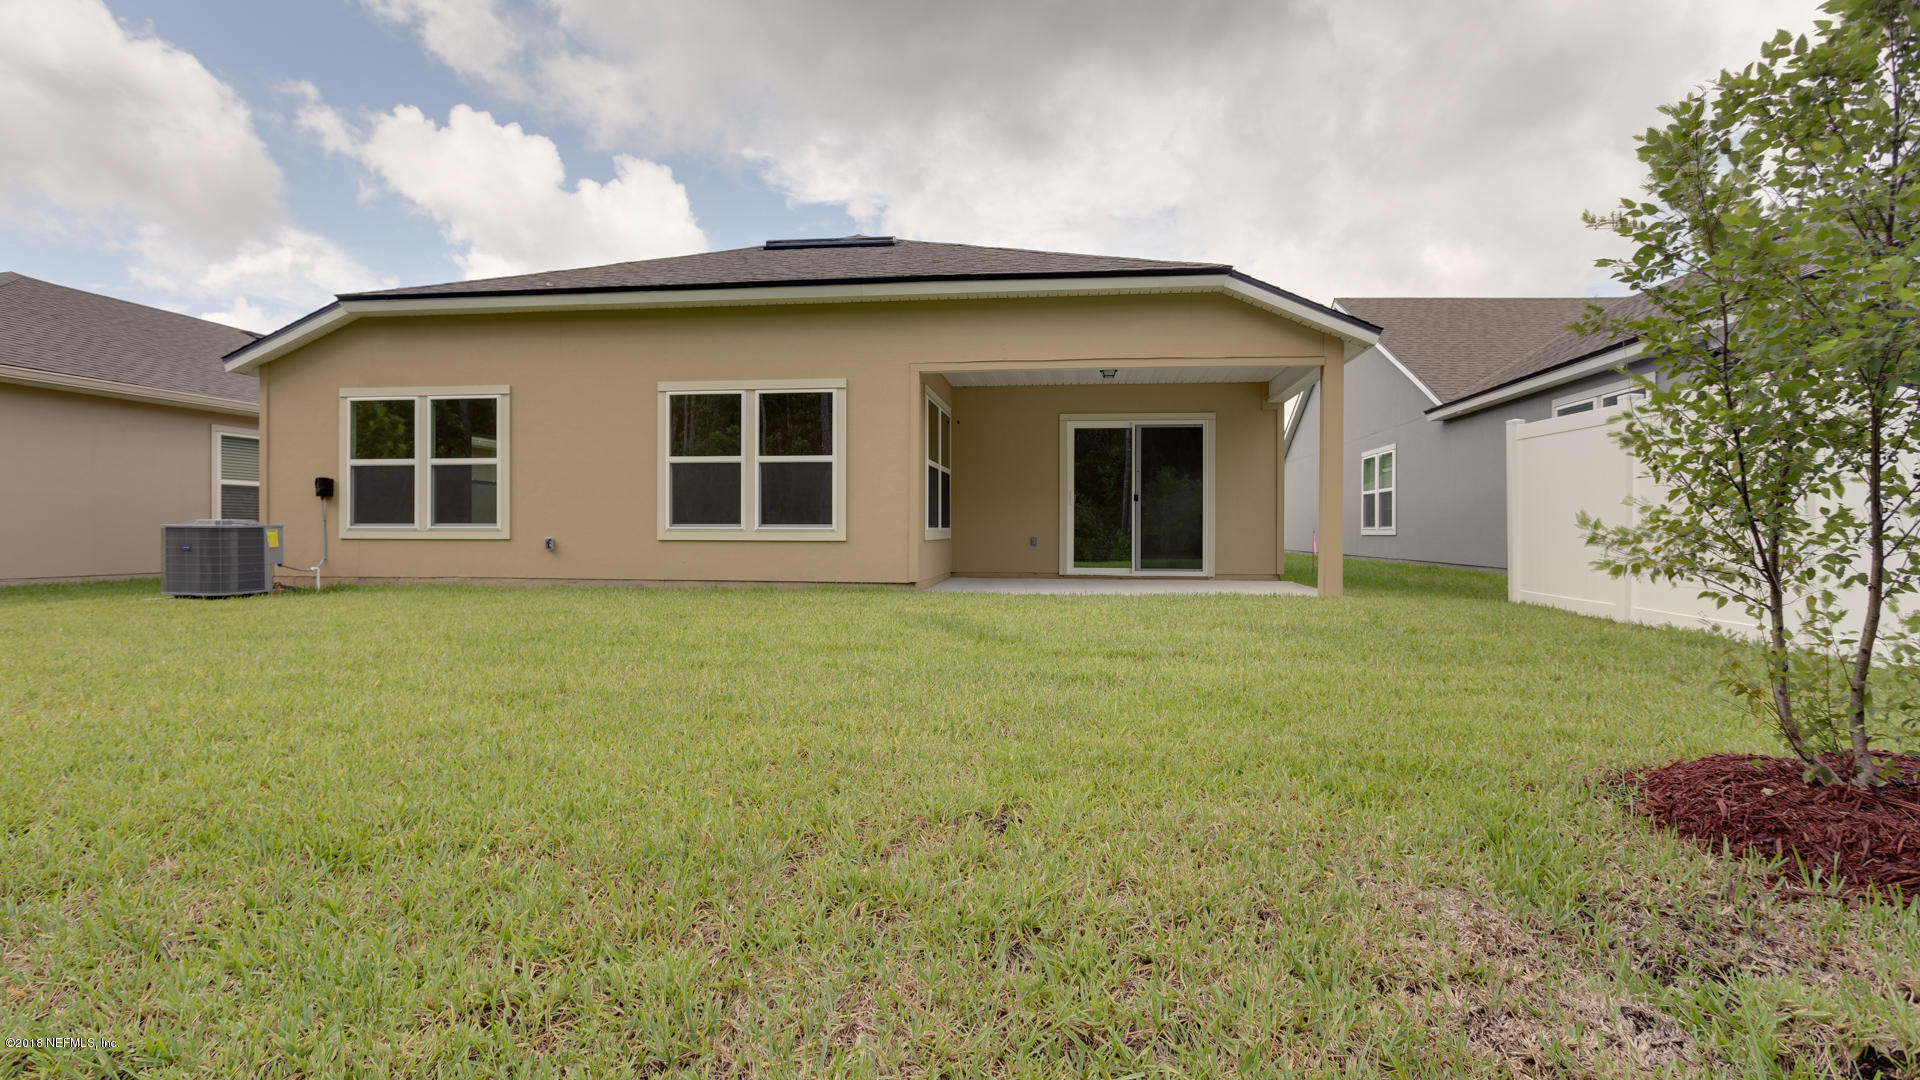 3529 BAXTER, JACKSONVILLE, FLORIDA 32222, 2 Bedrooms Bedrooms, ,2 BathroomsBathrooms,Residential - single family,For sale,BAXTER,908291